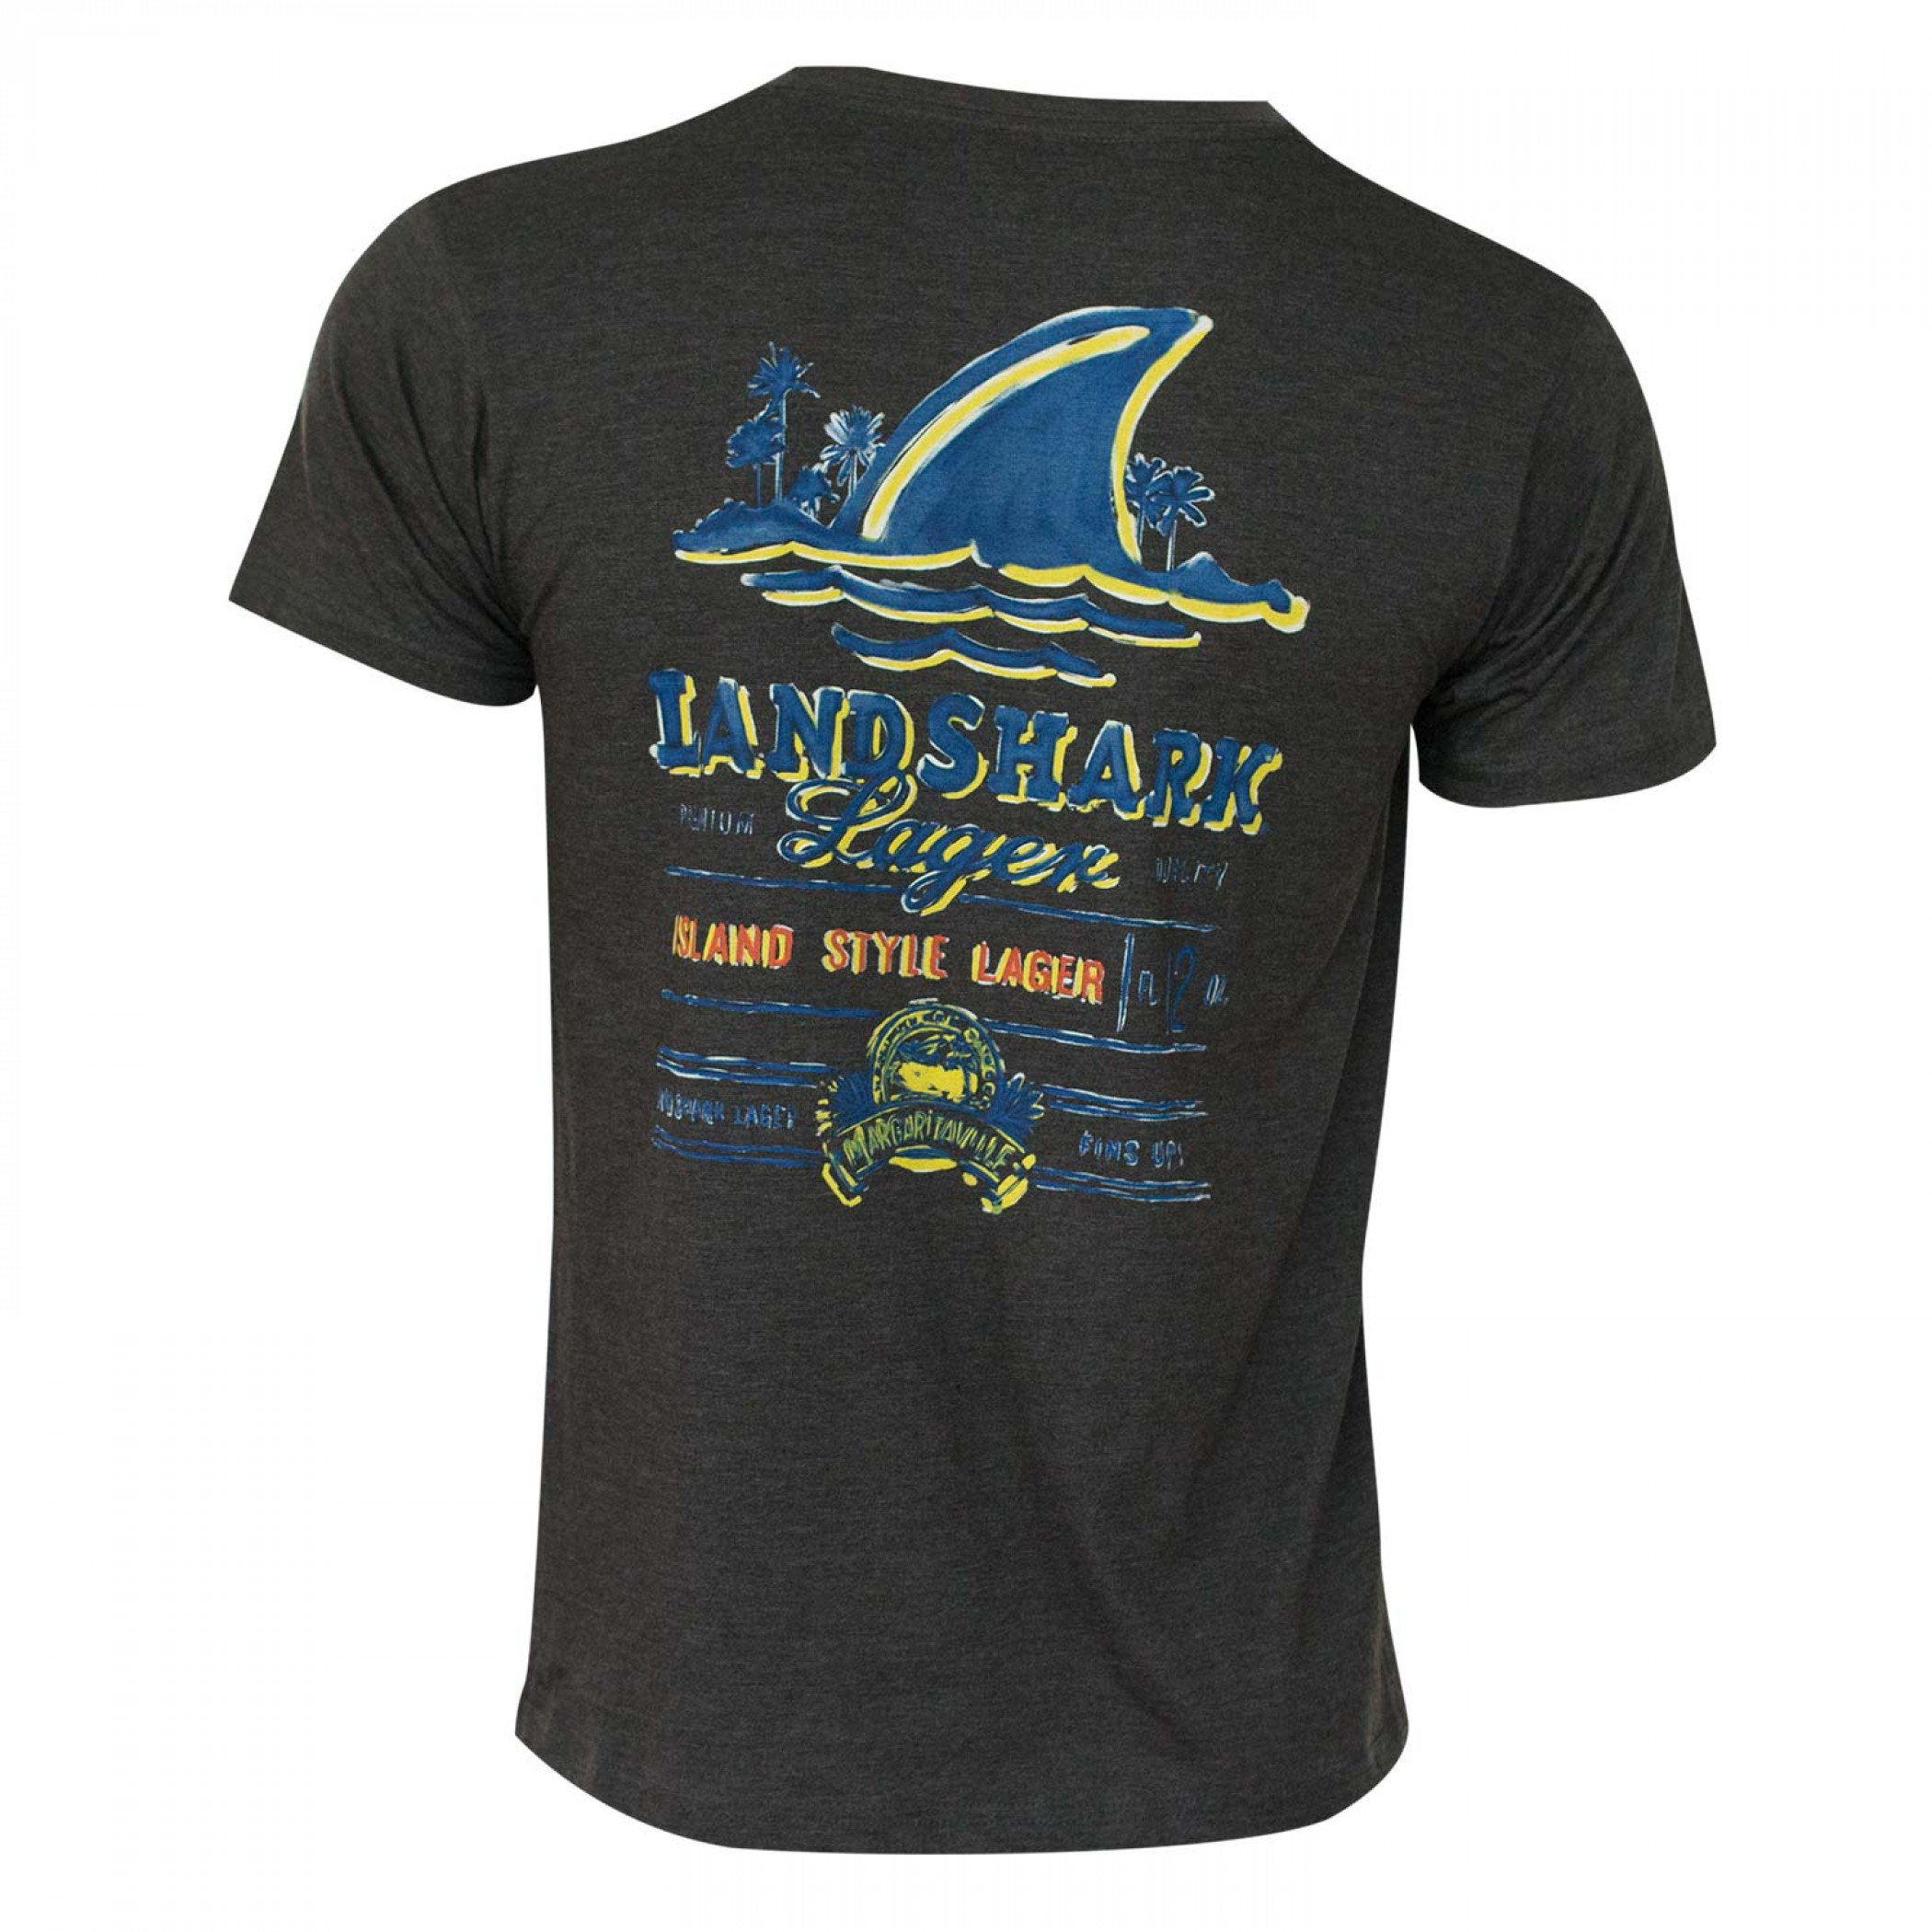 Landshark Painted Logo Black Tee Shirt